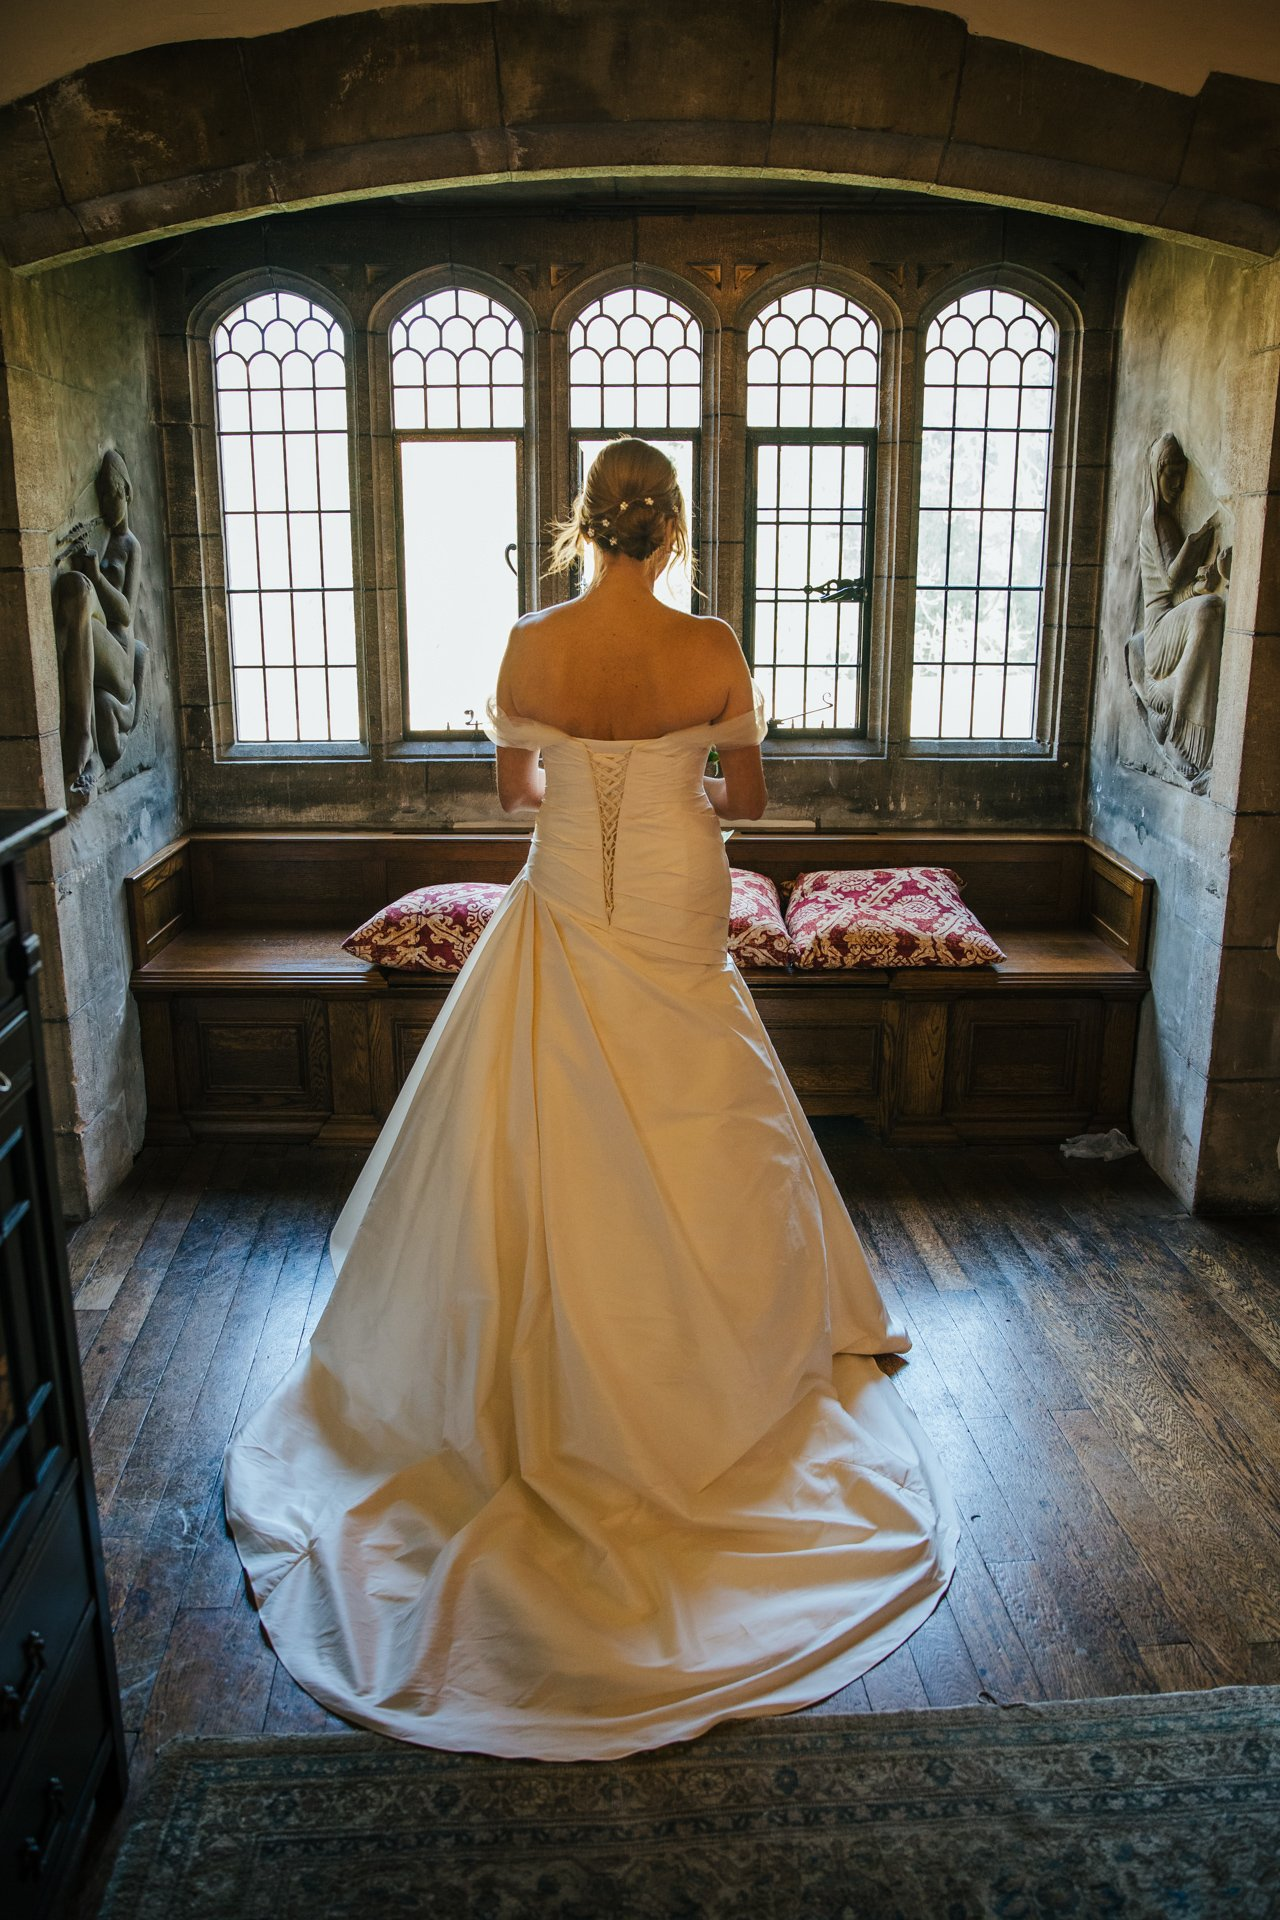 Bride in her wedding dress in front of window in Allington Castle, Kent Wedding Venue